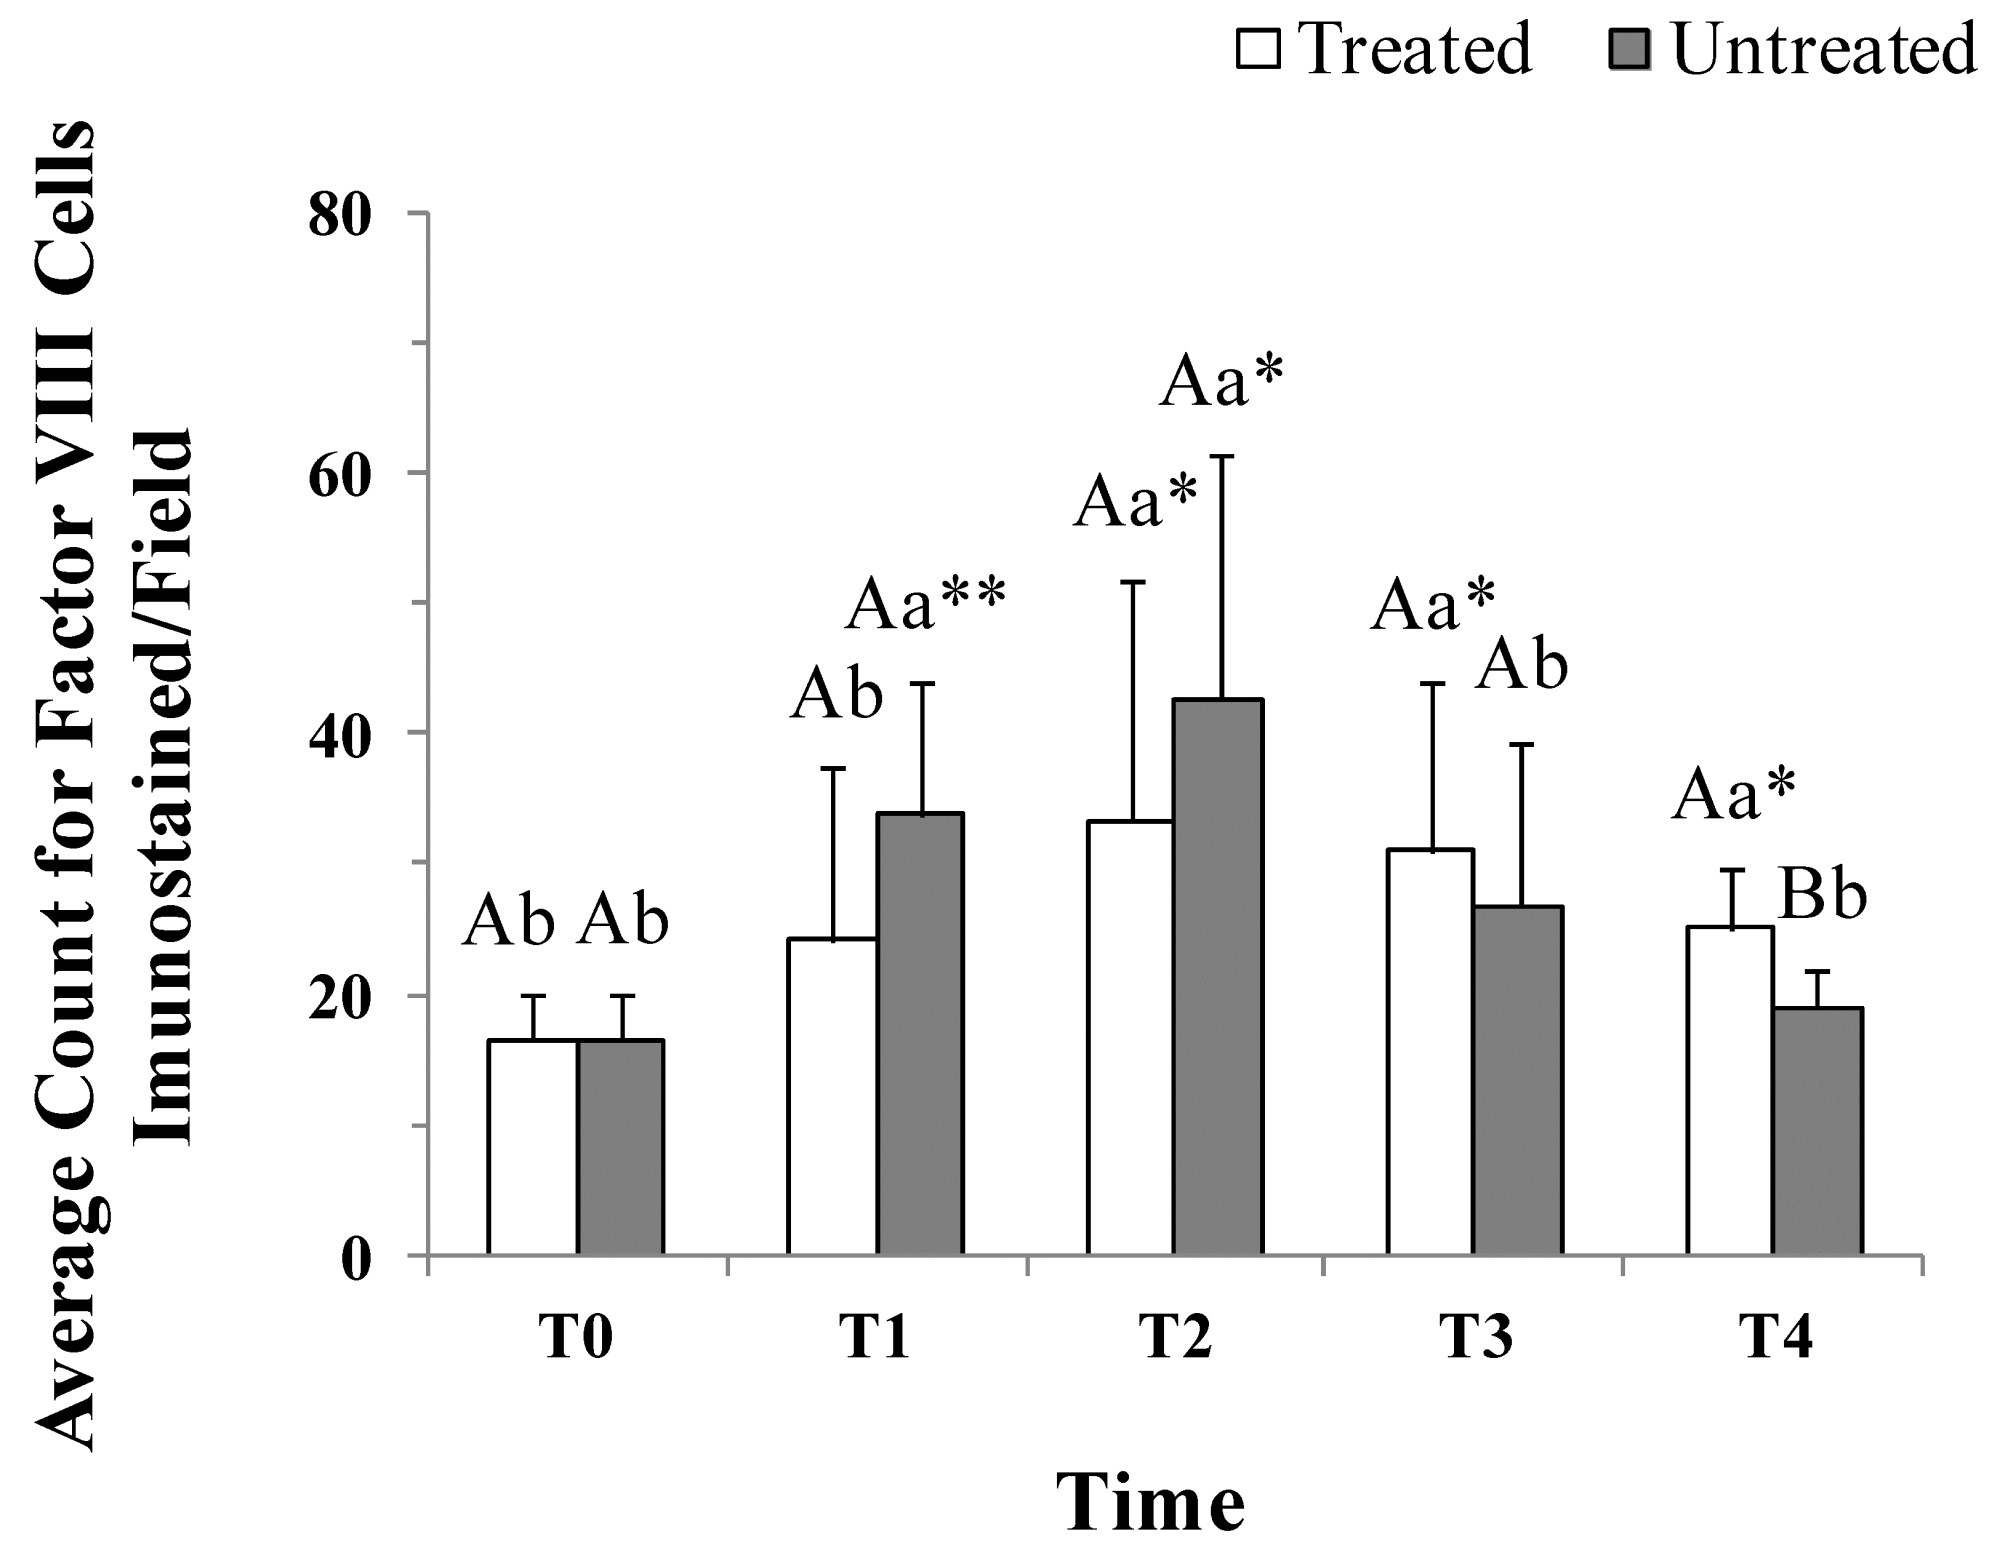 hight resolution of average count of vessels immunostained for factor in surgically induced wounds treated and untreated with lp prp evaluation times were before t0 and 2